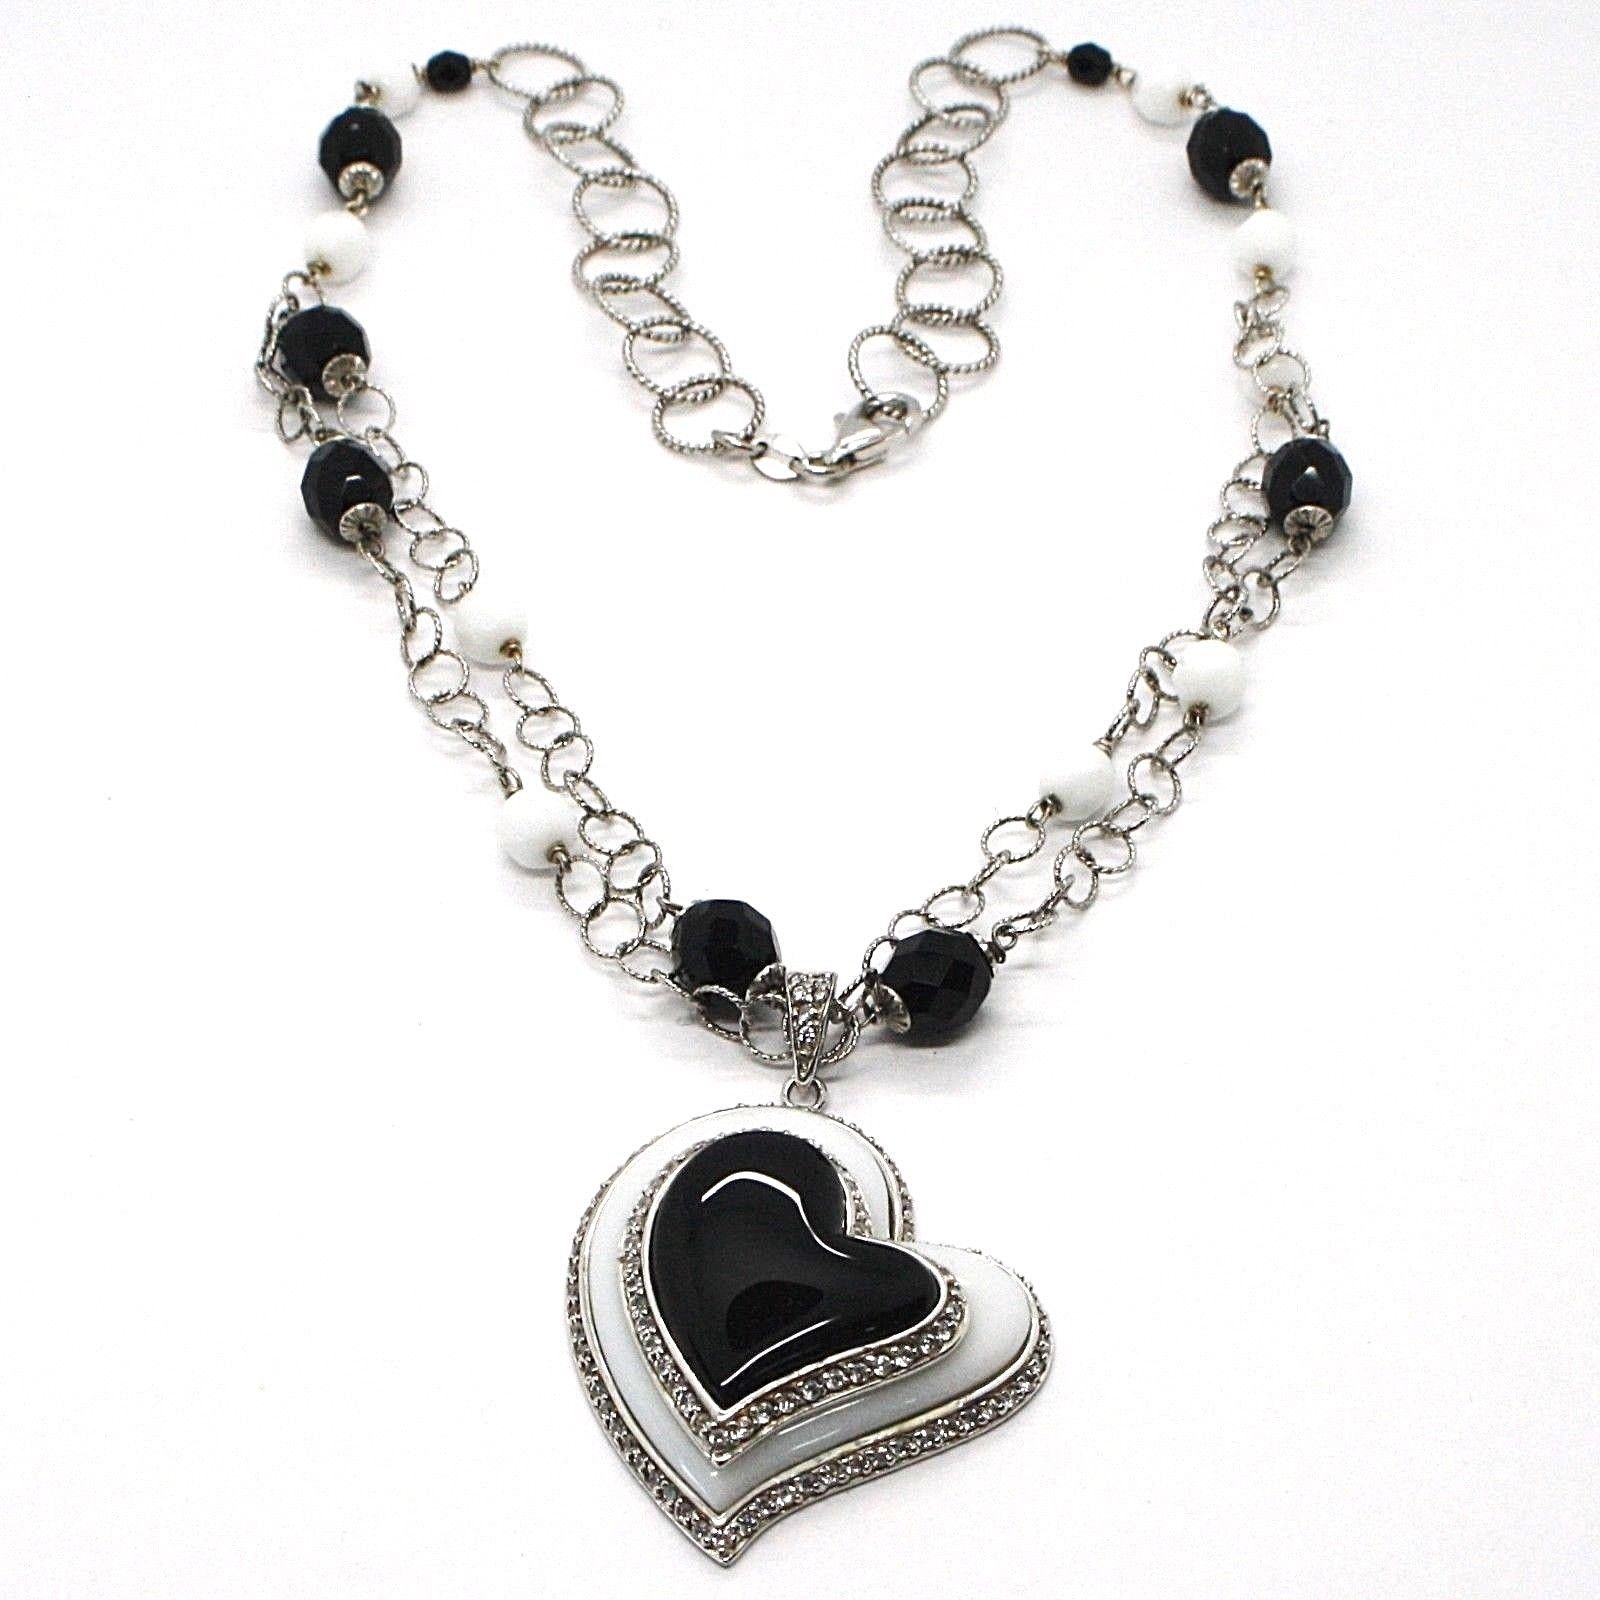 SILVER 925 NECKLACE, ONYX BLACK, AGATE WHITE, HEART PENDANT, CHAIN TWO FILE